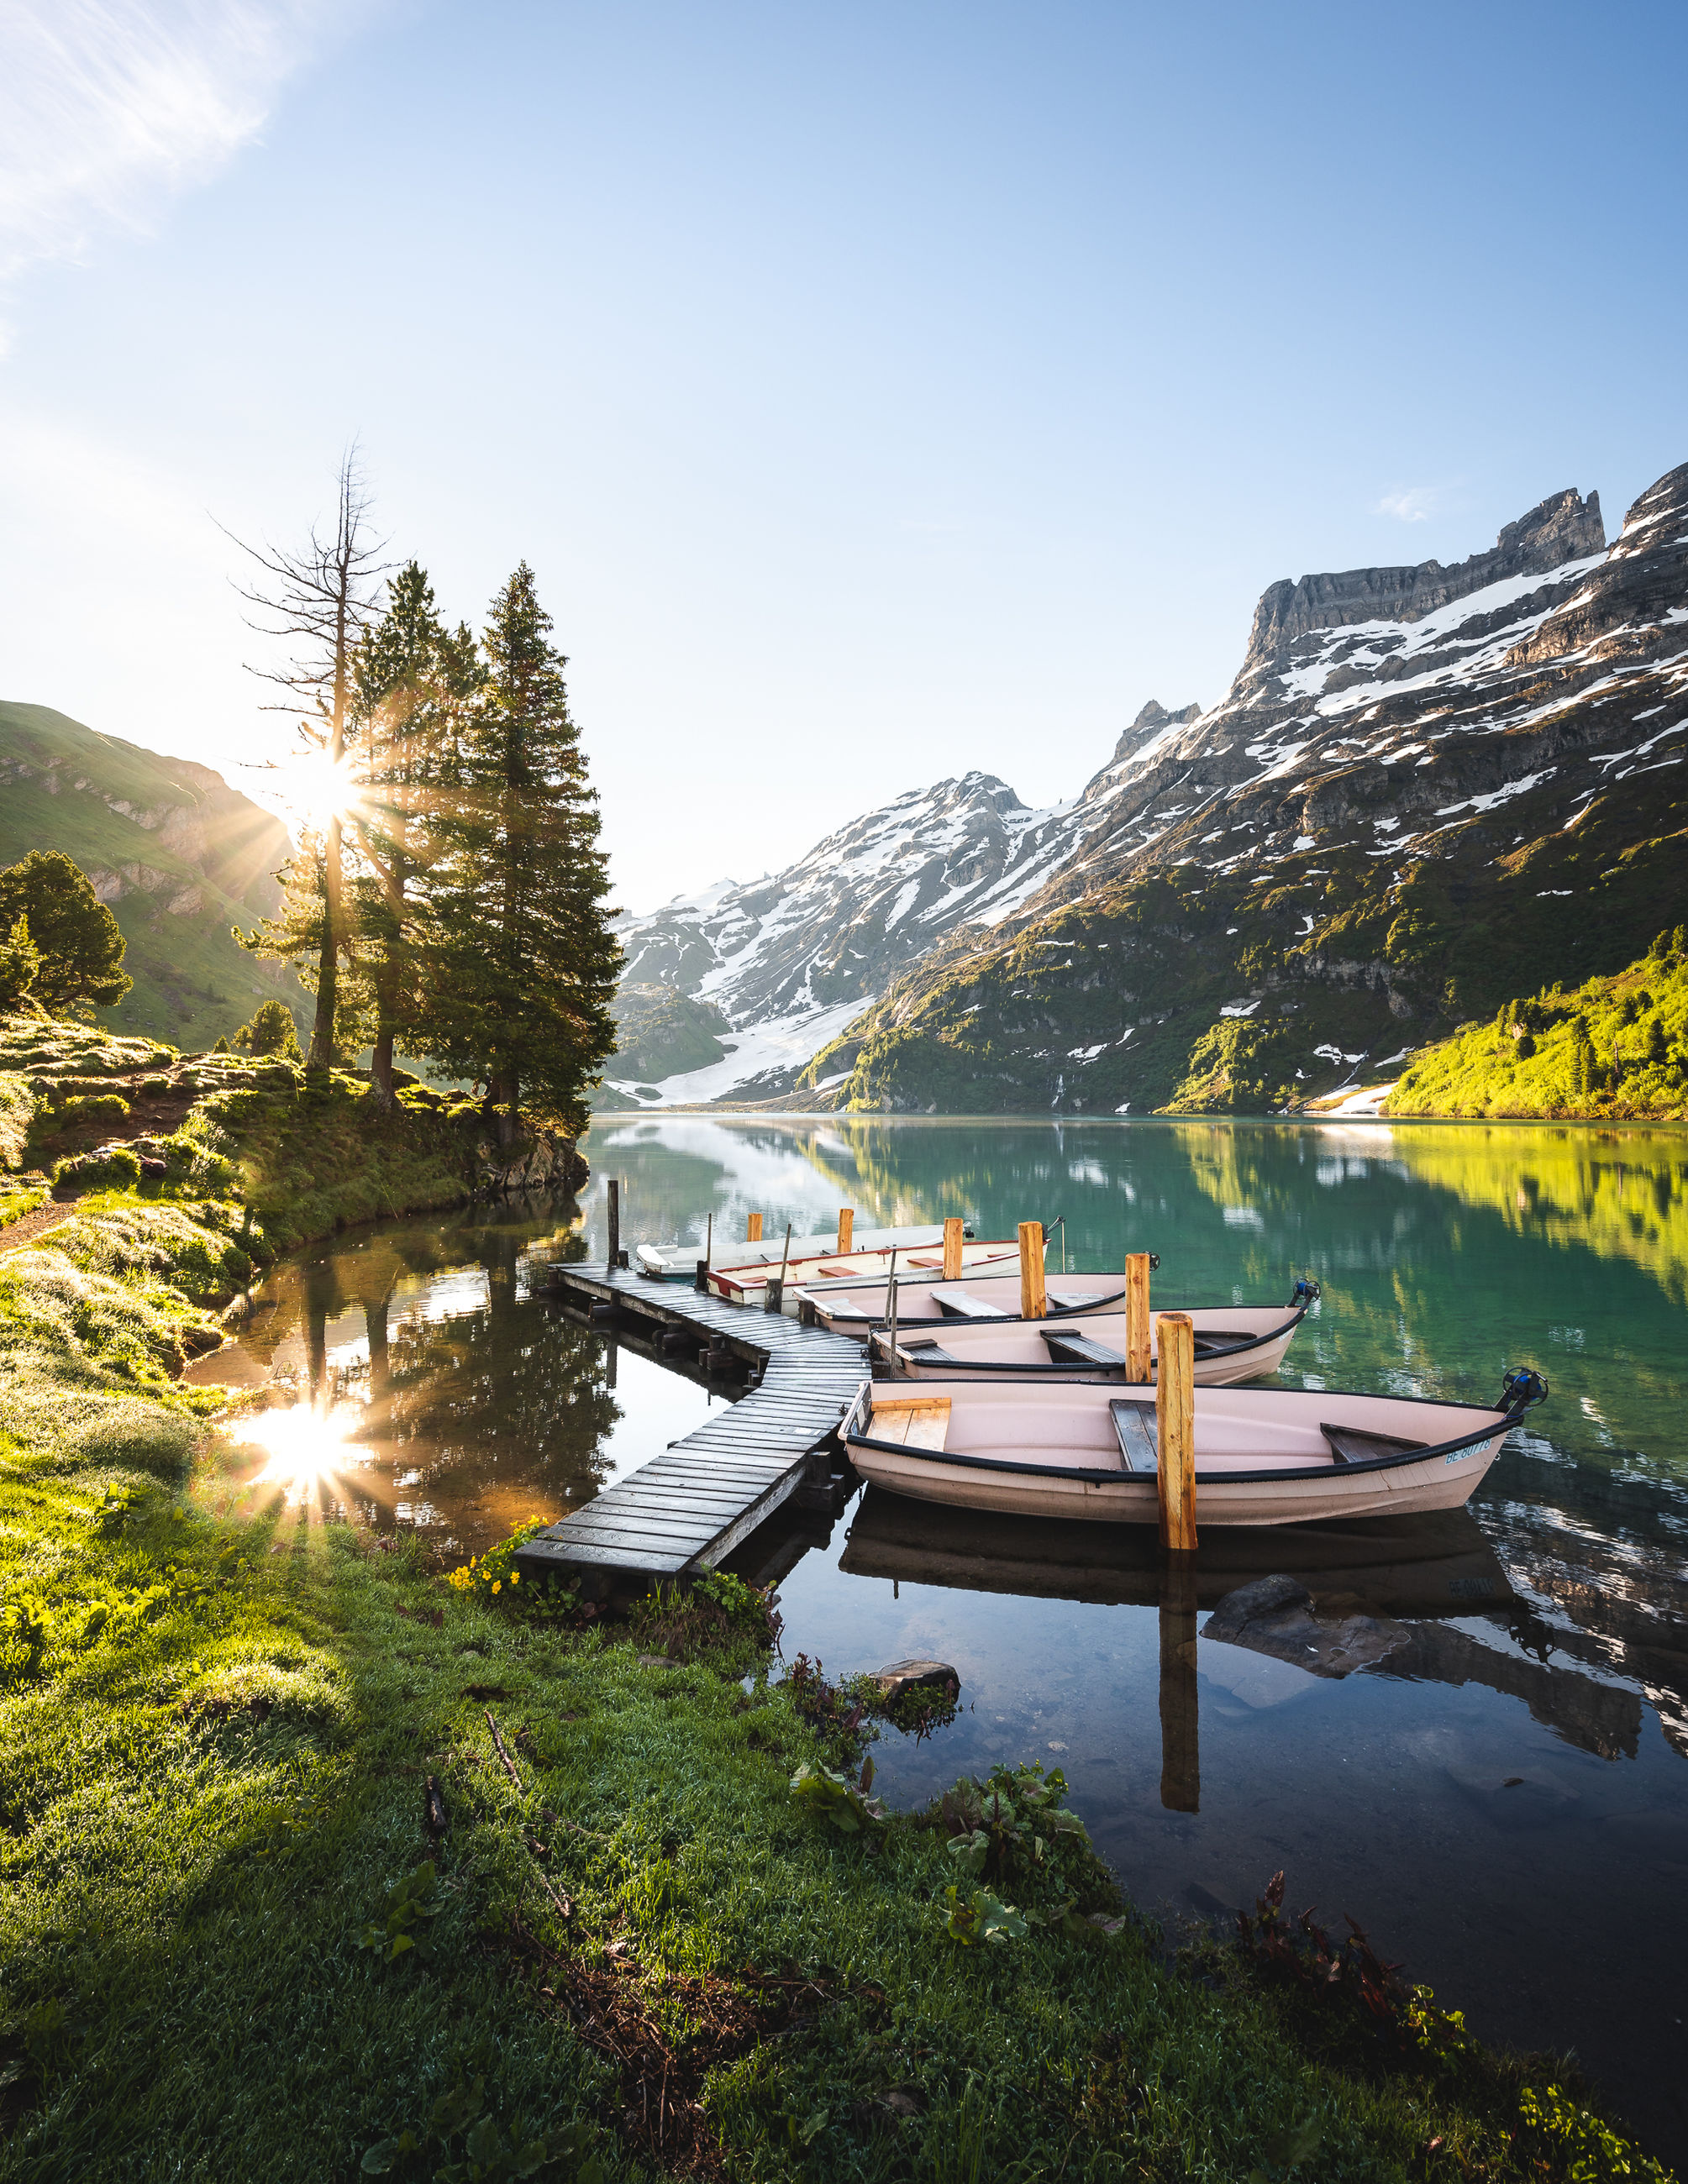 water, mountain, scenics - nature, sky, nature, beauty in nature, reflection, lake, landscape, environment, tranquility, sunlight, mountain range, plant, nautical vessel, travel, land, tranquil scene, travel destinations, transportation, tree, sun, no people, snow, wilderness, forest, lens flare, outdoors, cold temperature, day, pinaceae, winter, vacation, sunbeam, idyllic, non-urban scene, clear sky, sunny, coniferous tree, summer, trip, adventure, activity, holiday, tourism, blue, pine tree, mountain peak, sunset, mode of transportation, grass, twilight, leisure activity